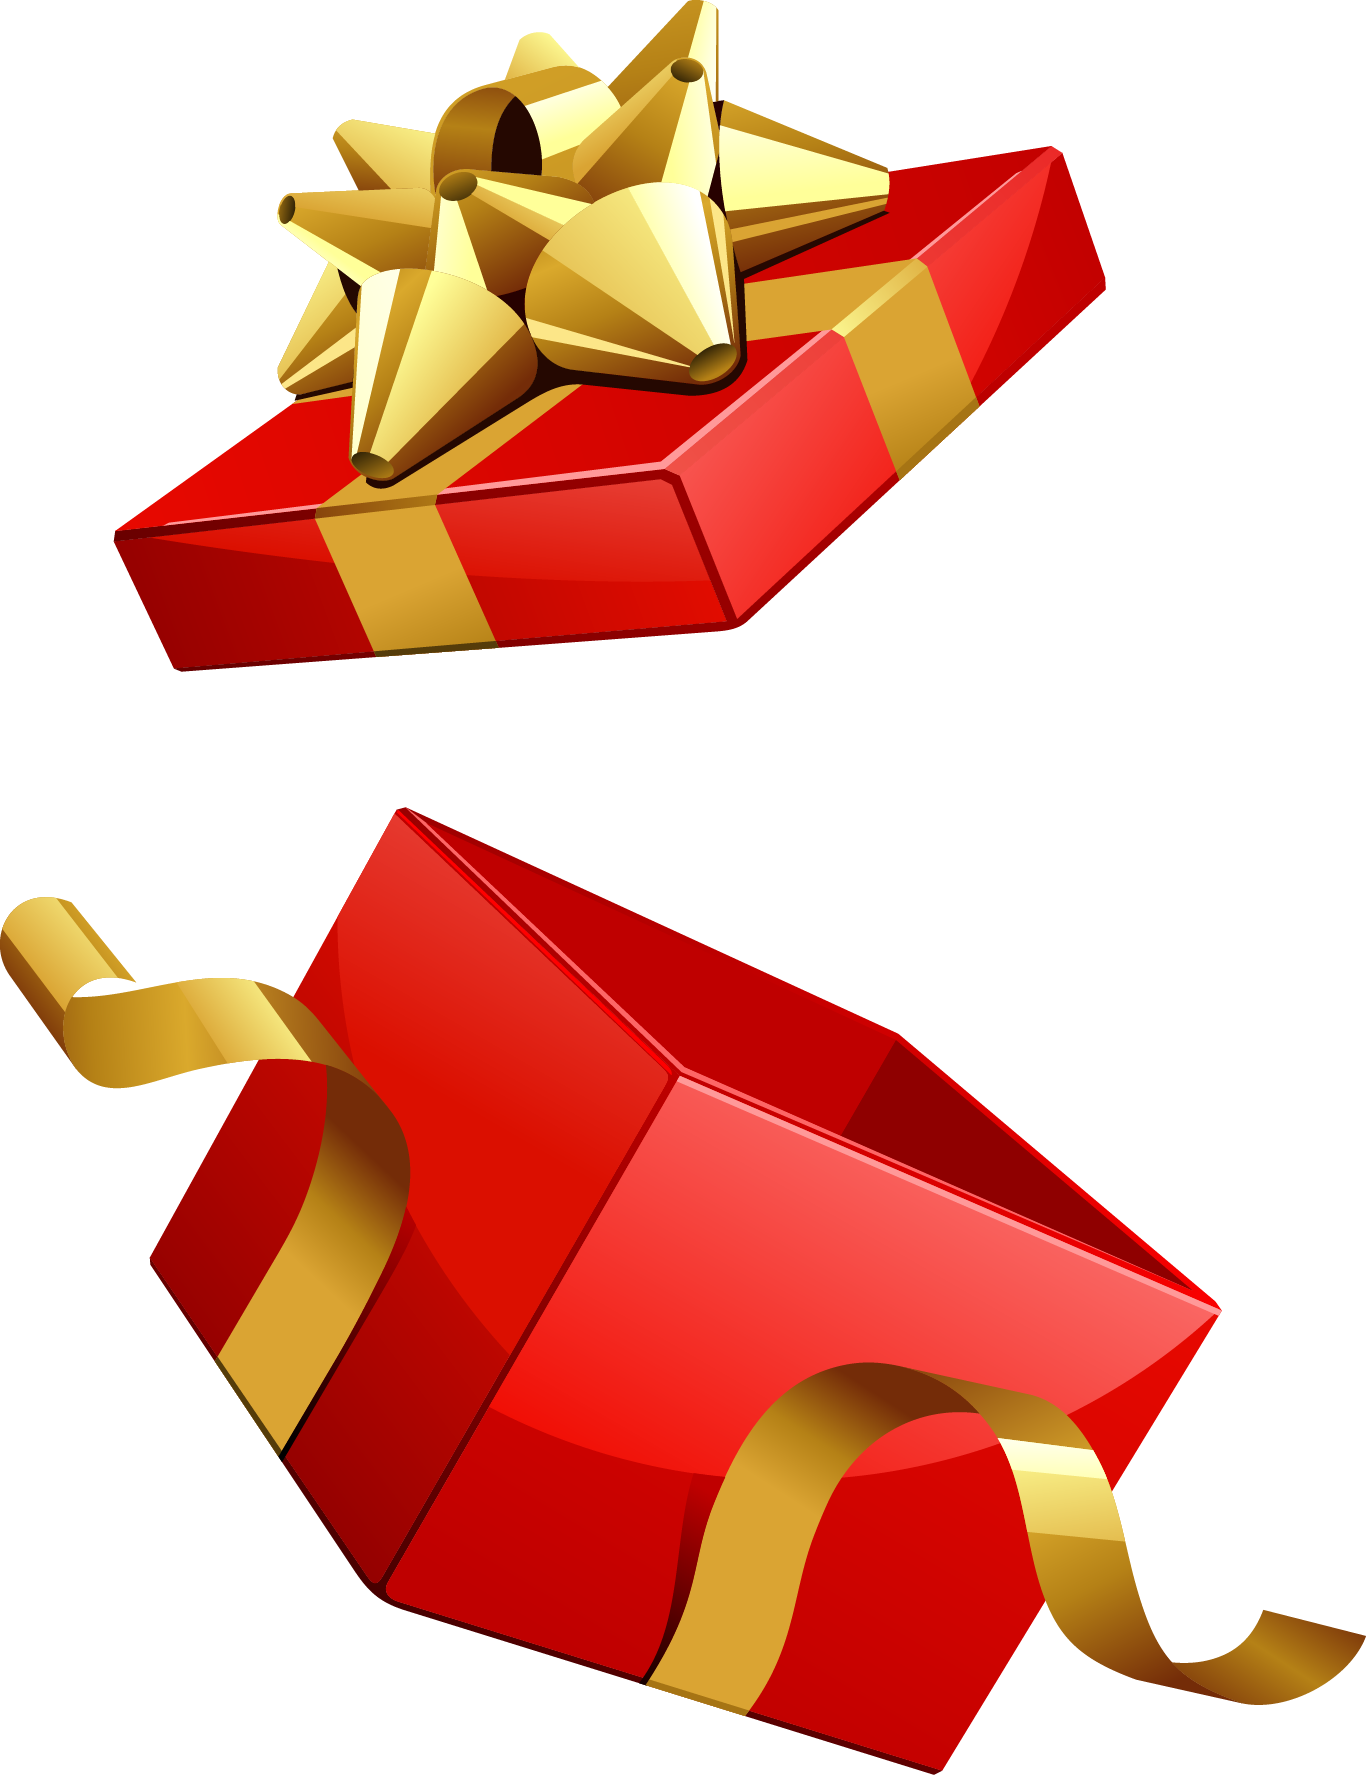 Open Box Png Clipart